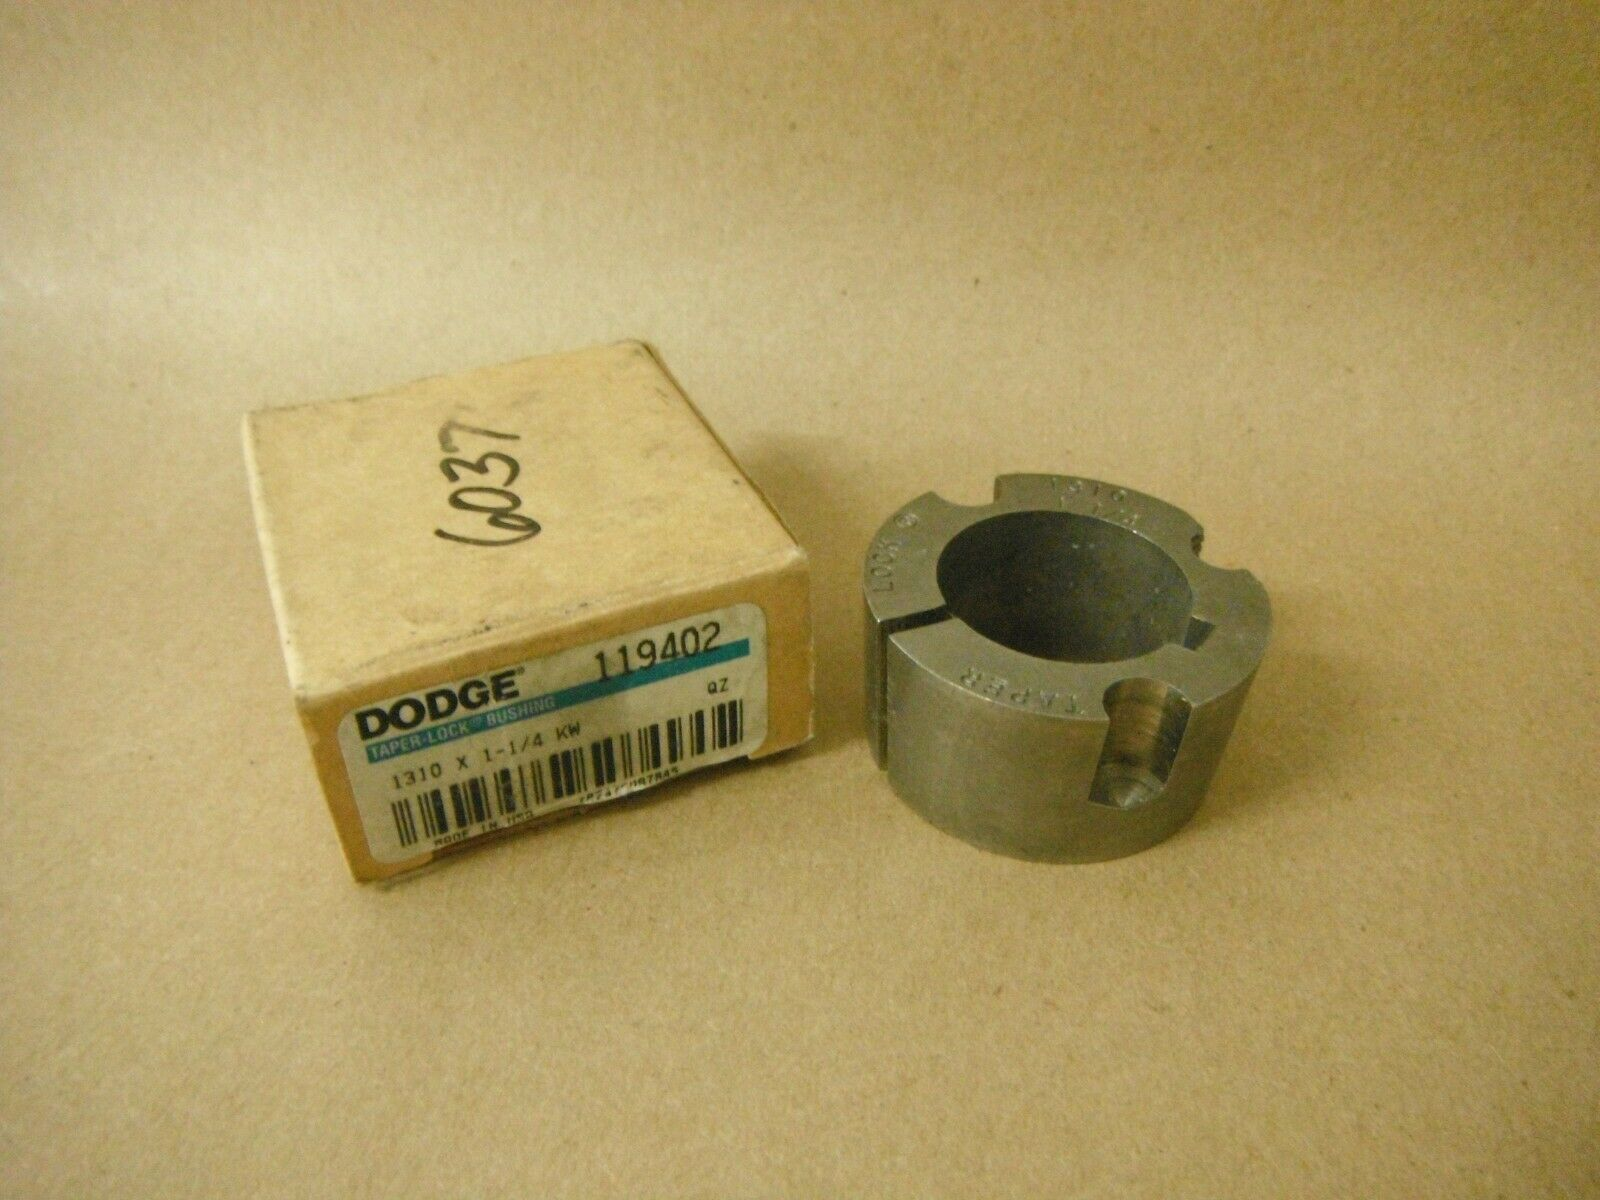 Primary image for 119402 DODGE 1310 X 1-1/4 KW TAPER LOCK BUSHING MISSING HARDWARE